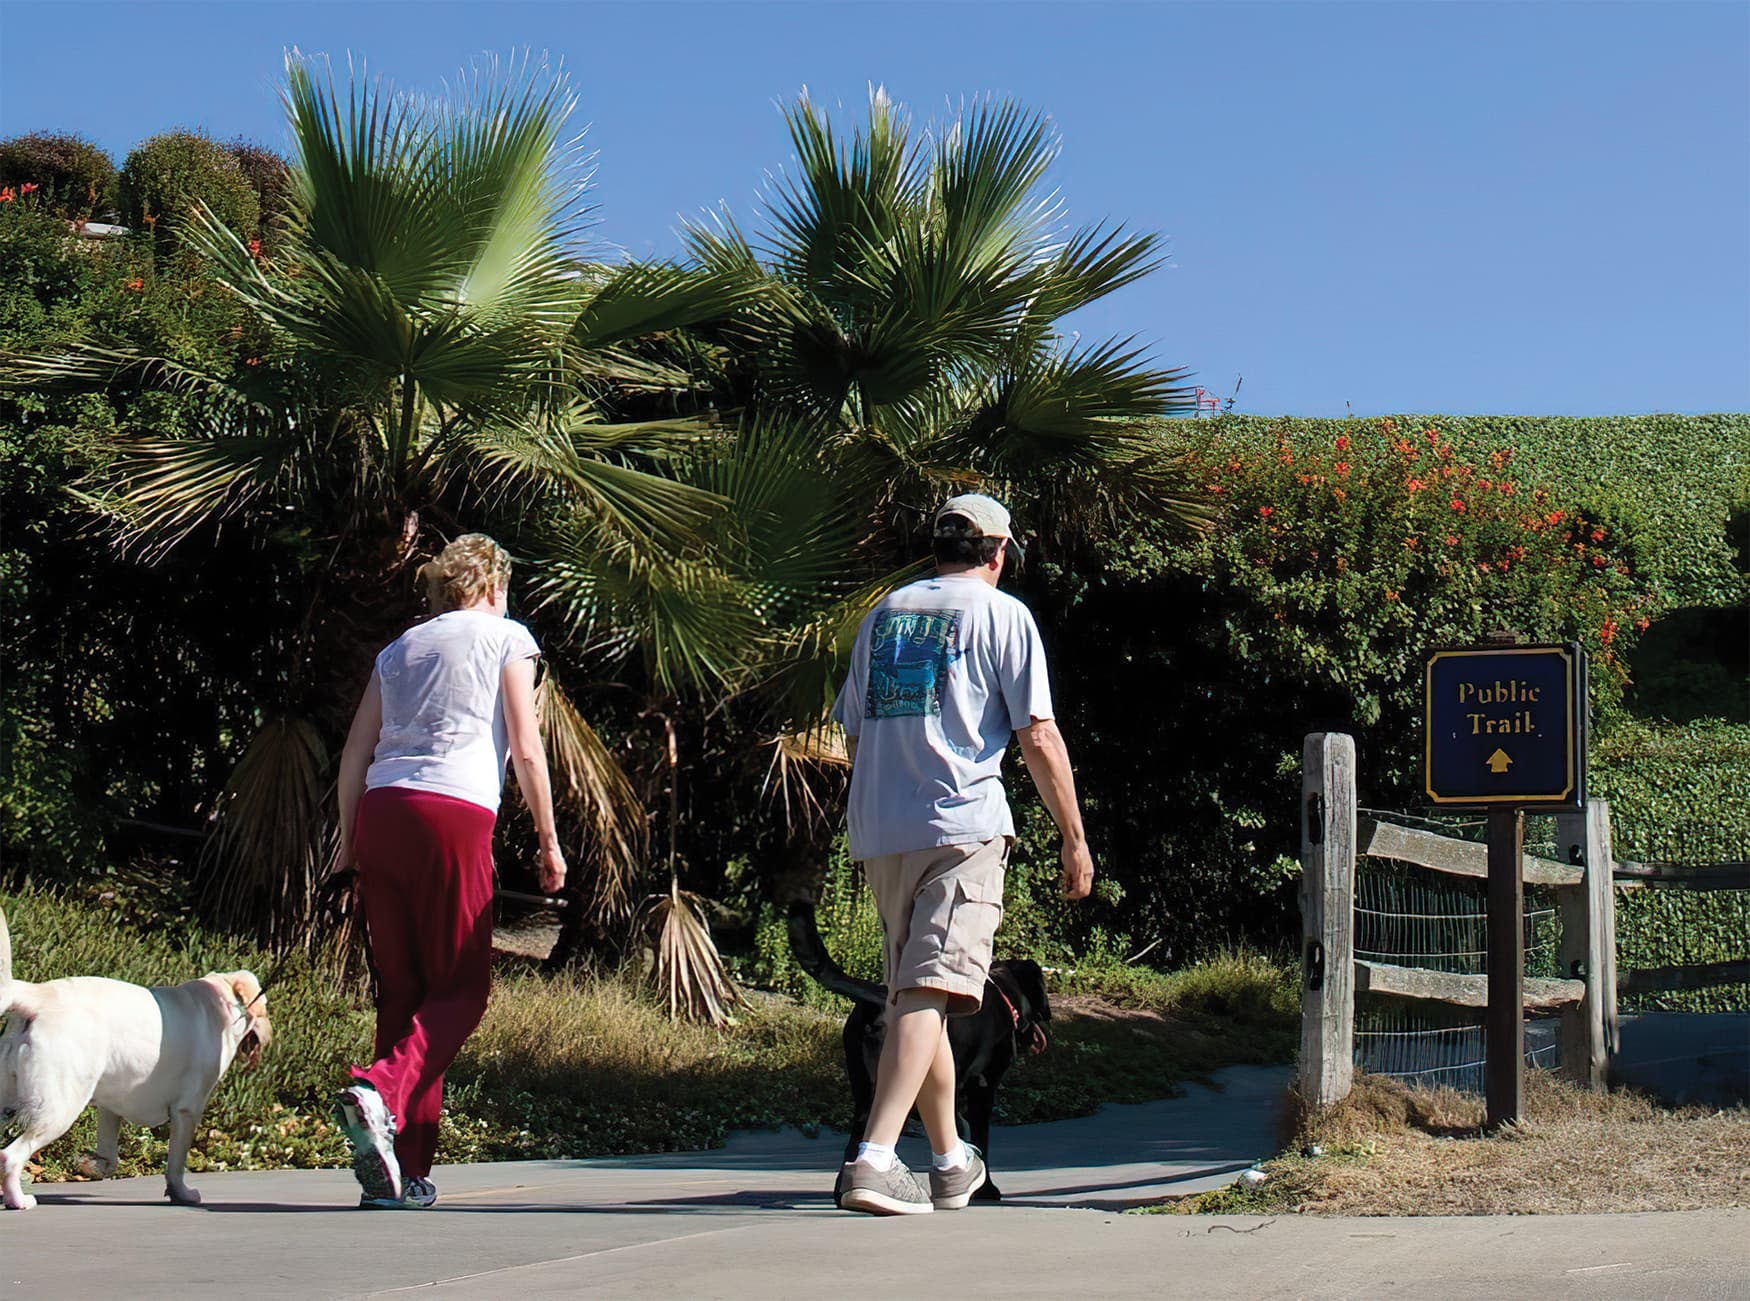 Monarch Beach Masterplan. City of Dana Point, California. Civic Design, Residential Community Signage, Park Wayfinding & Signage. Trail Signage.